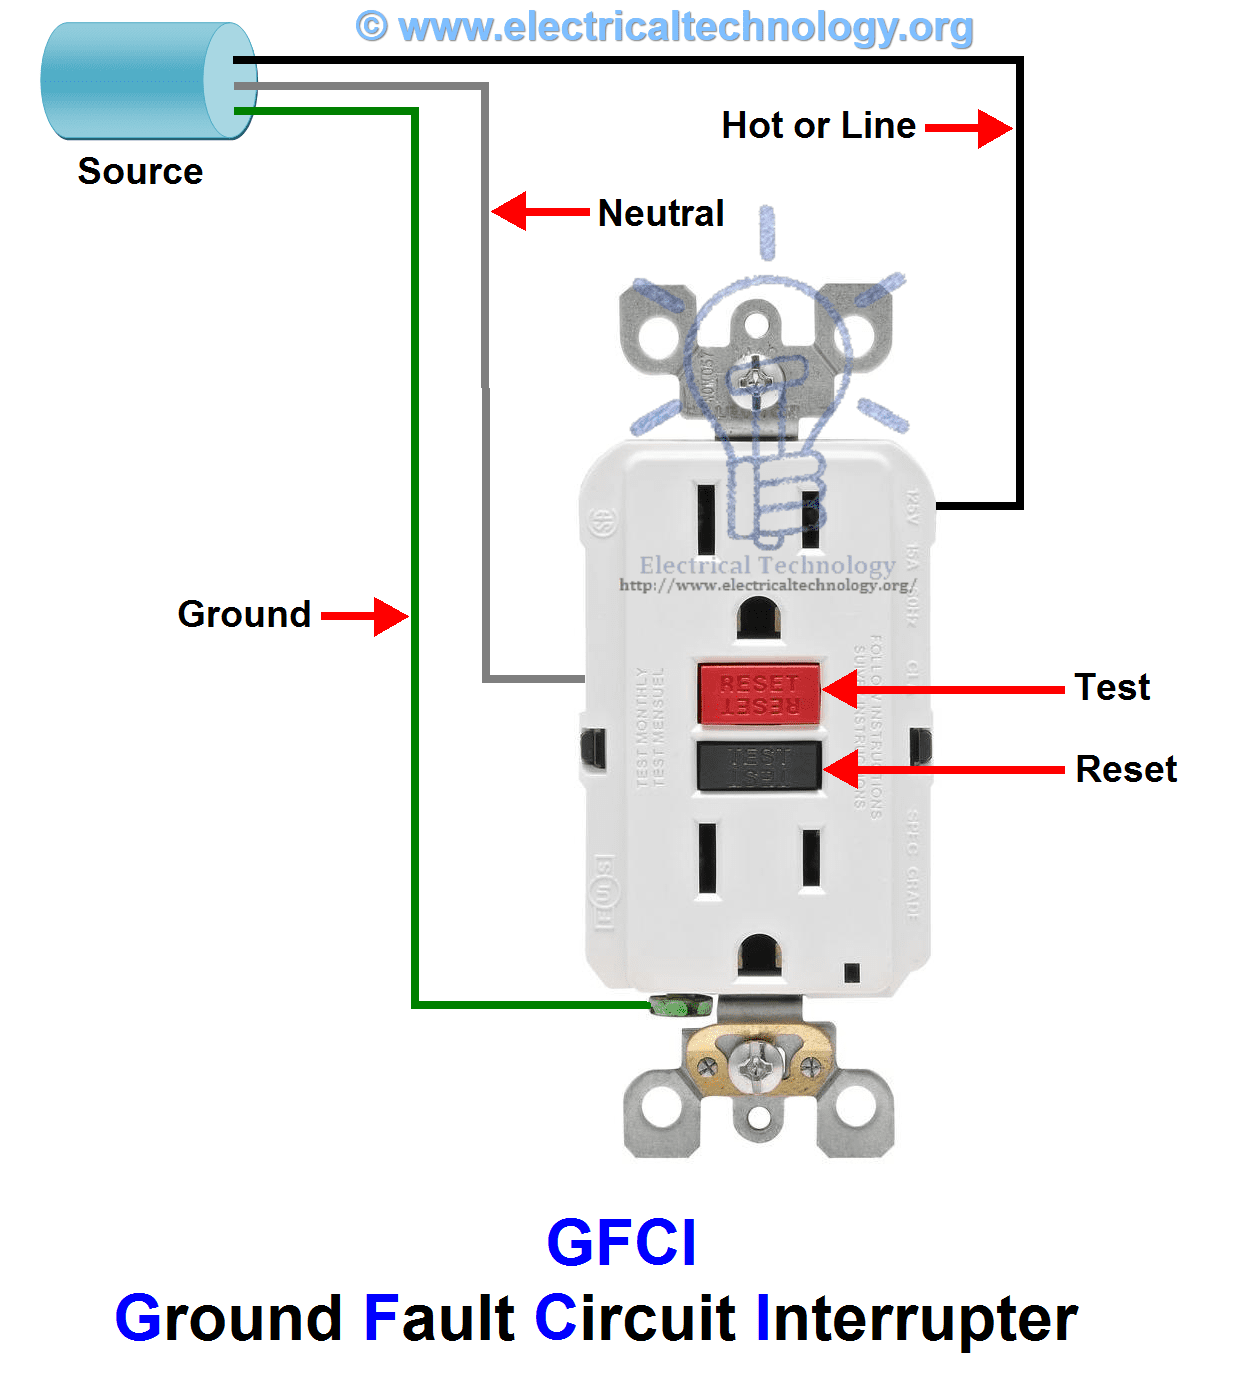 hight resolution of gfci ground fault circuit interrupter types working applications groundfault interrupter circuit diagram tradeoficcom